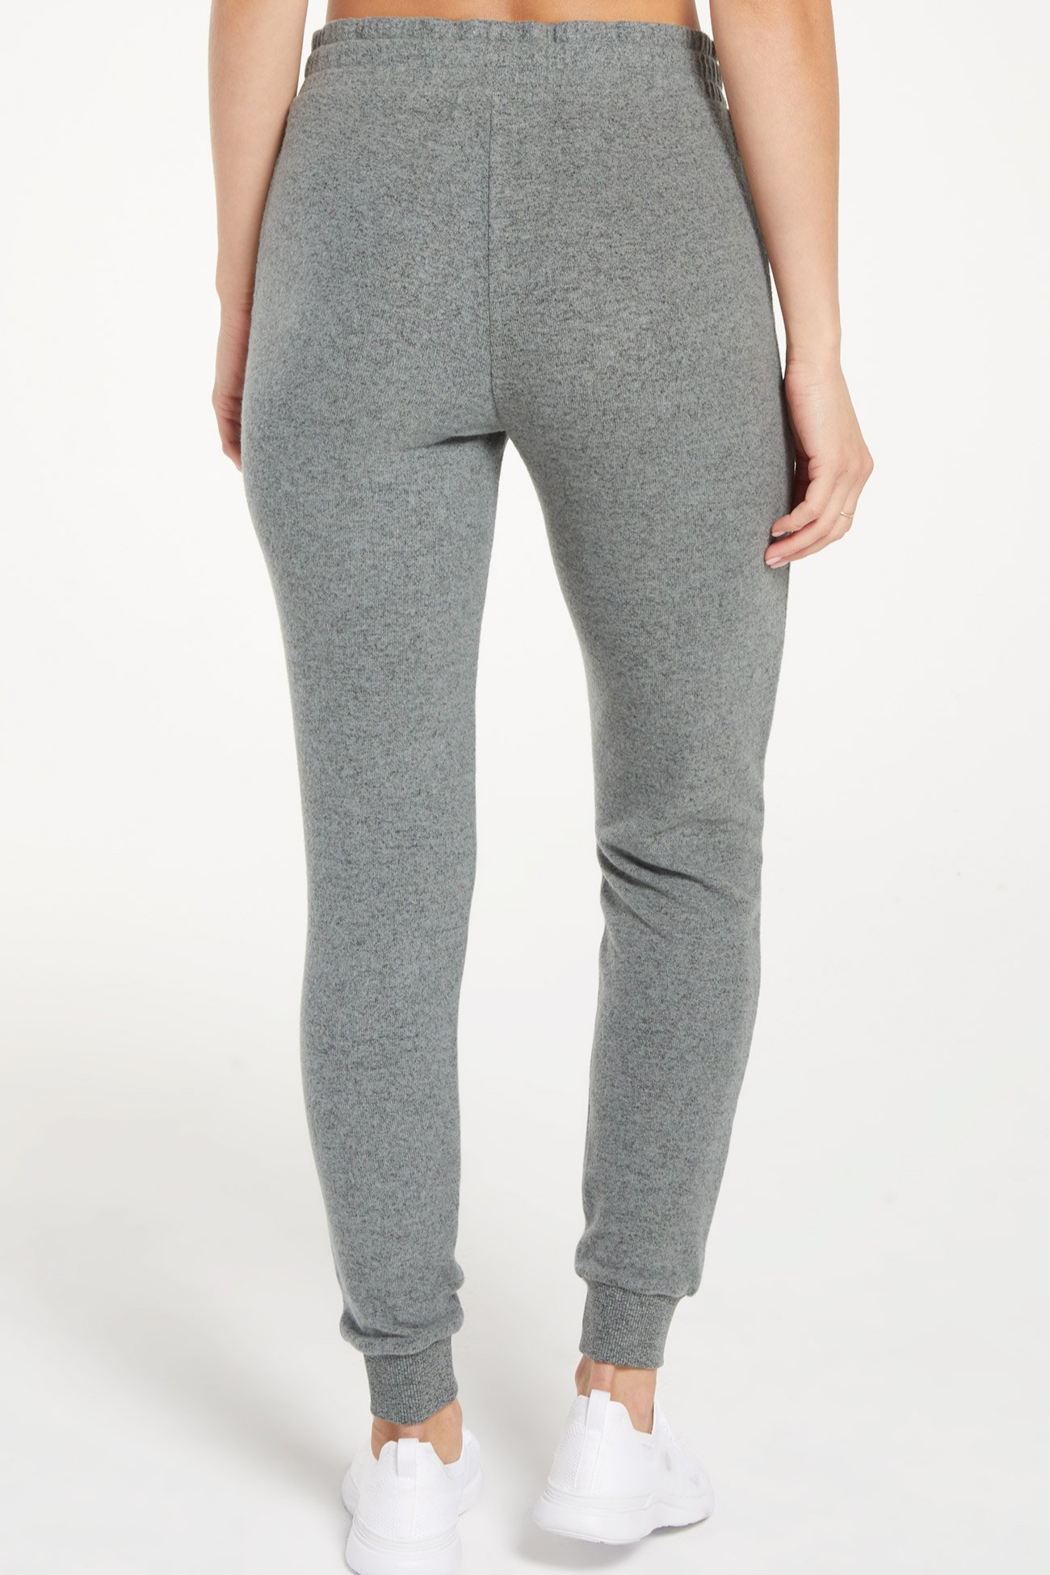 z supply Marled Jogger Pant - Front Full Image